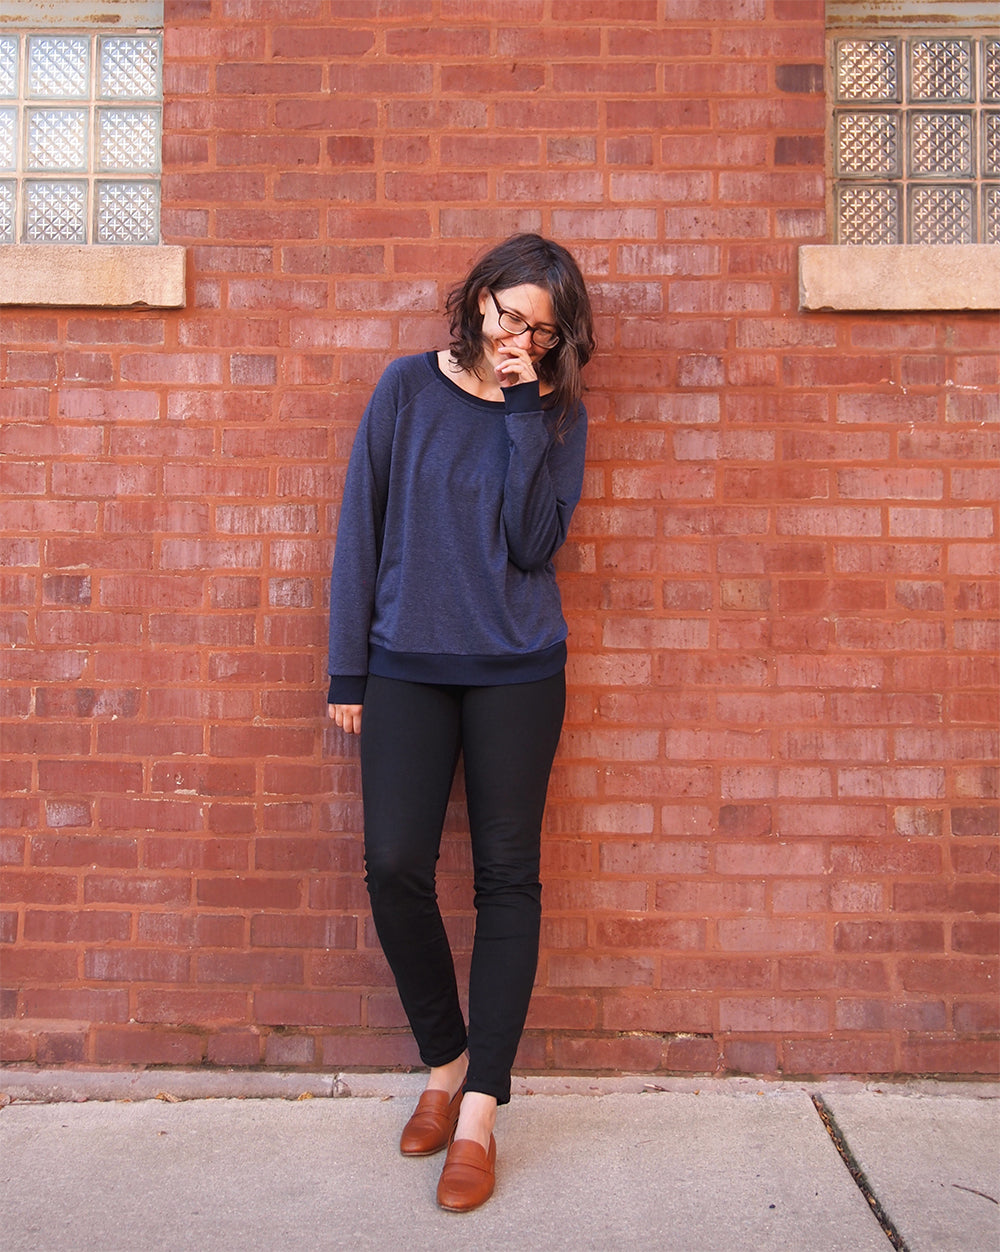 Grainline Studio | Linden Sweatshirt View A